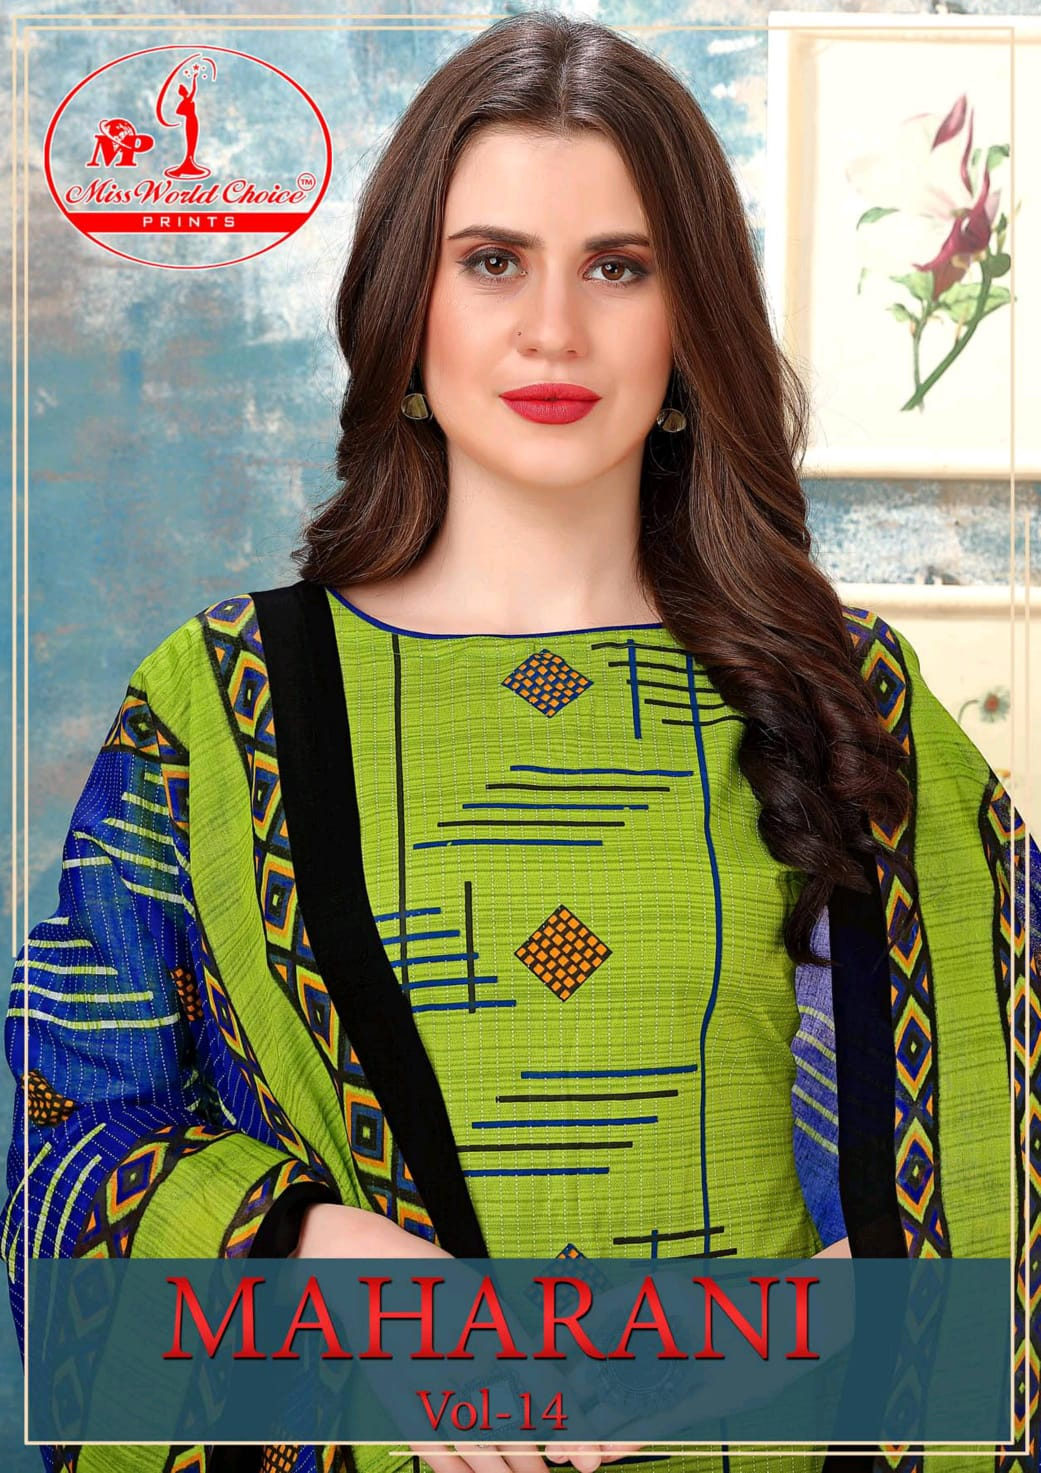 Maharani Vol 14 By Miss World Choice Cotton Formal Wear Salwar Suits At Lowest Rate